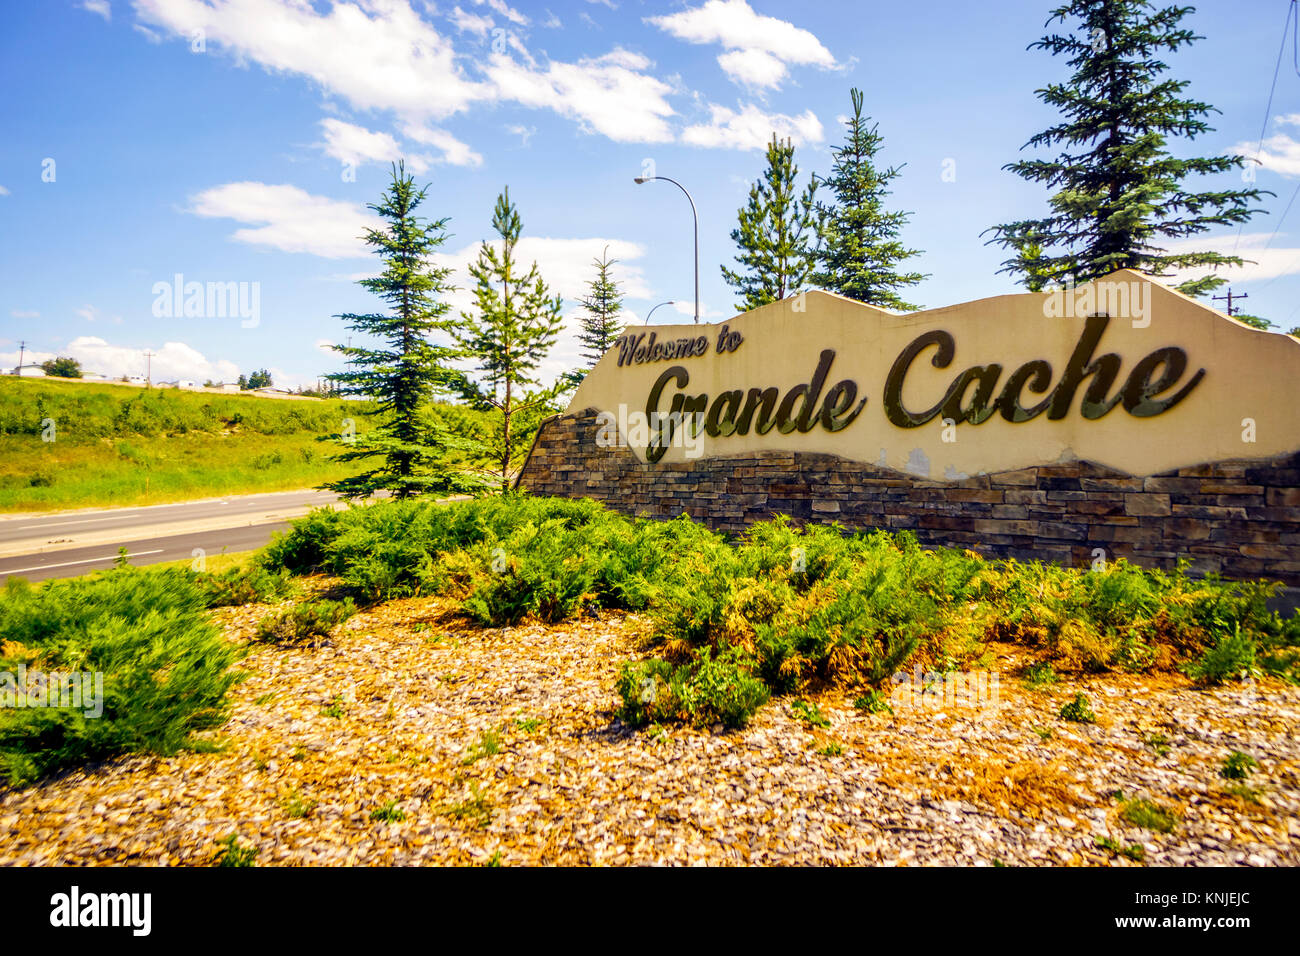 Welcome to Grande Cache, welcoming sign in Alberta, Canada - Stock Image